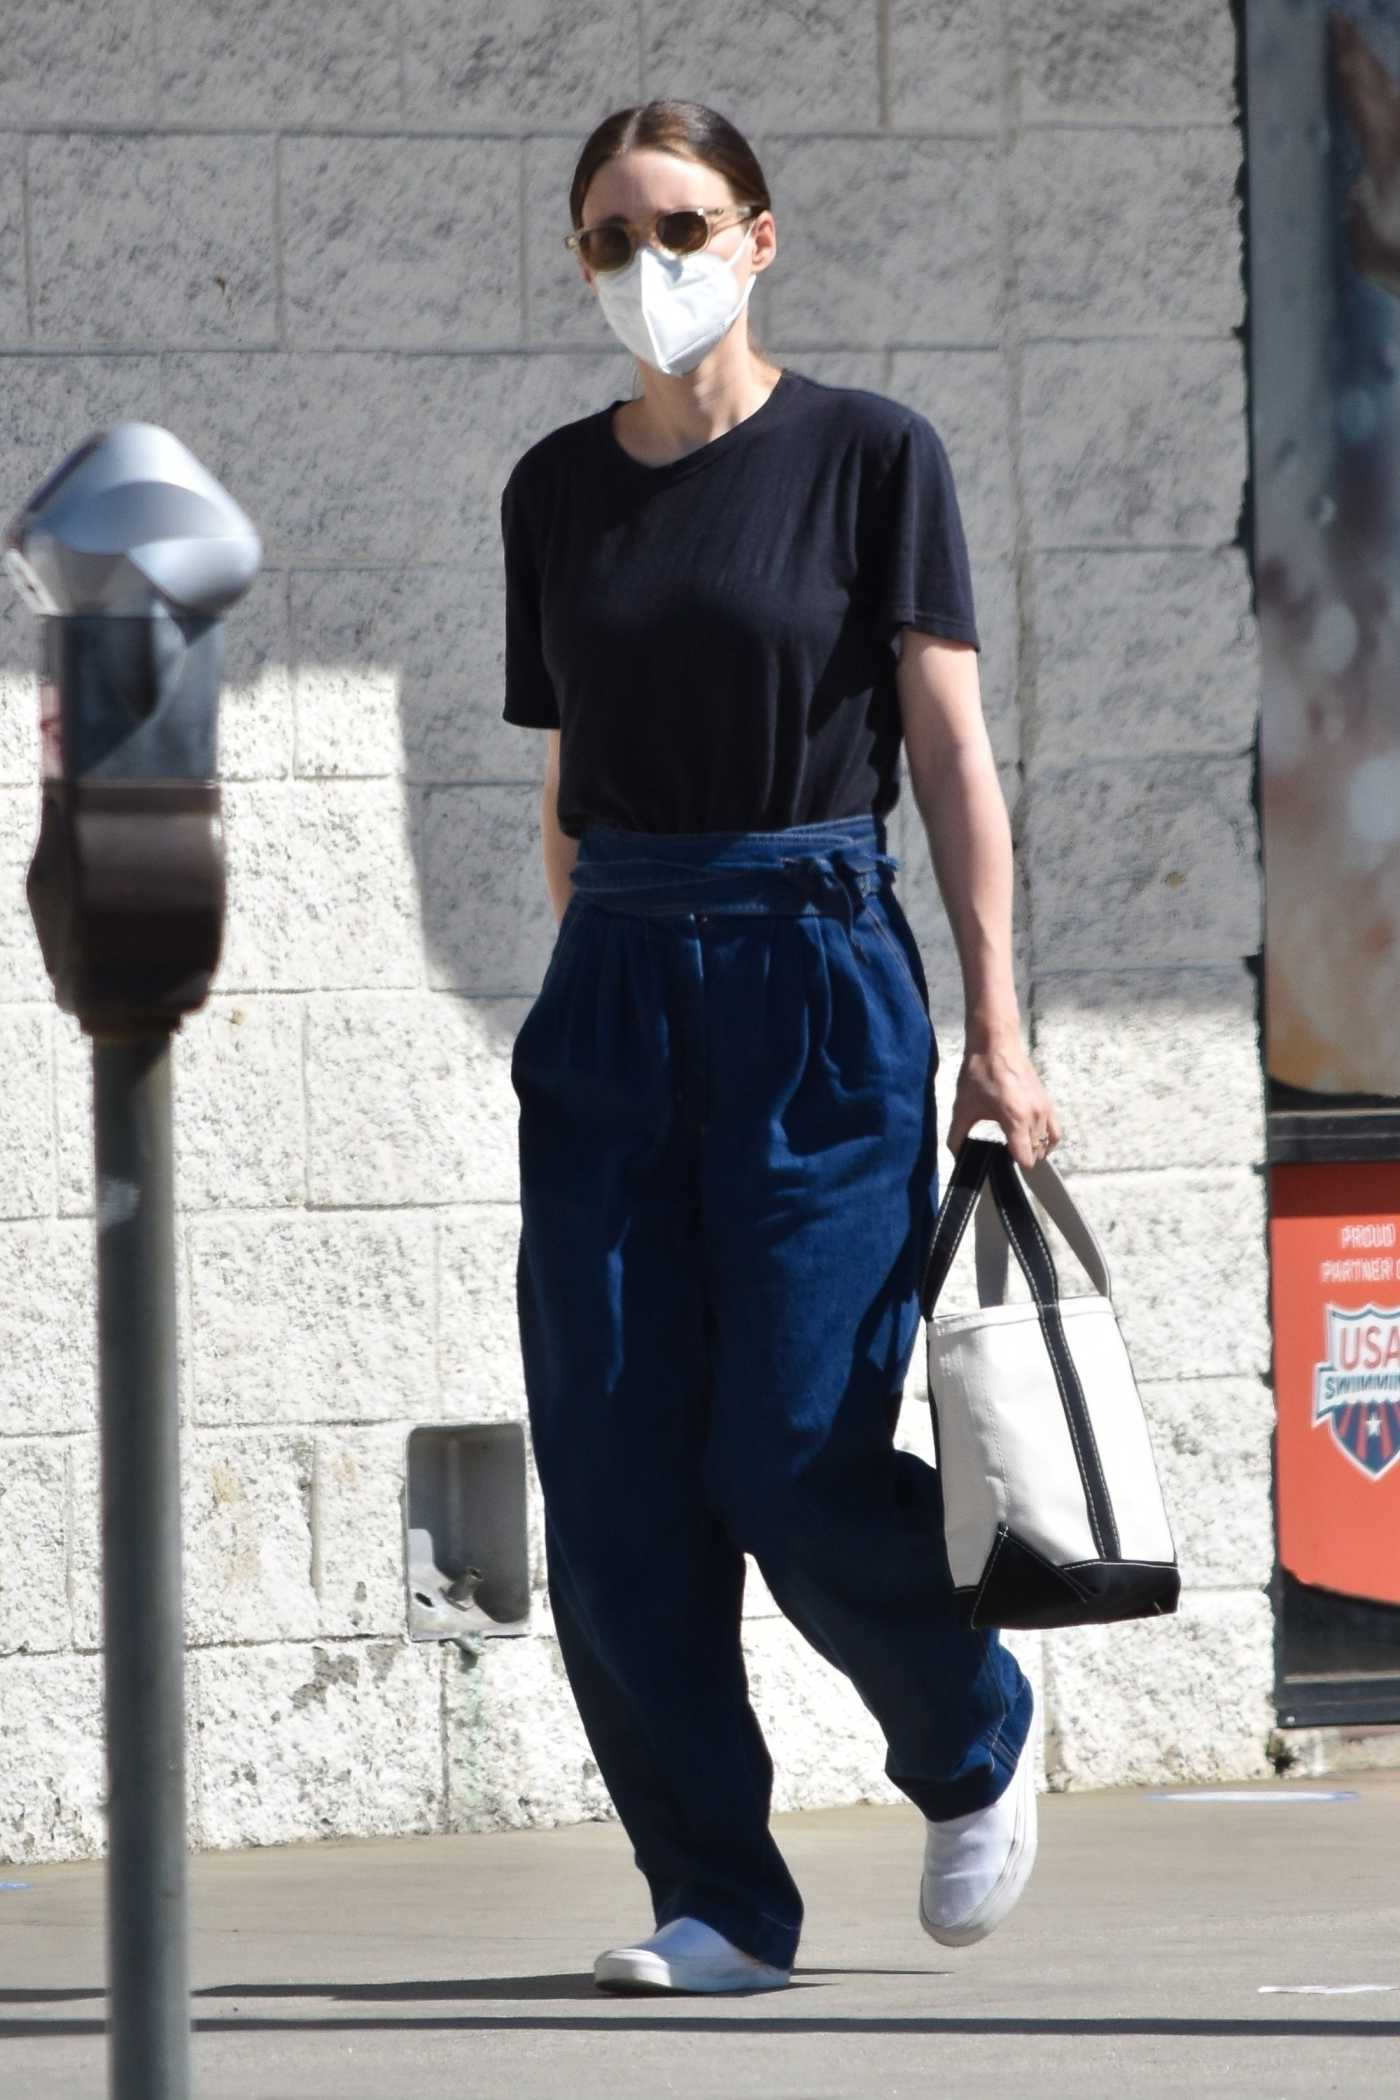 Rooney Mara in a Black Tee Goes on a Solo Shopping Trip in Studio City 02/24/2021